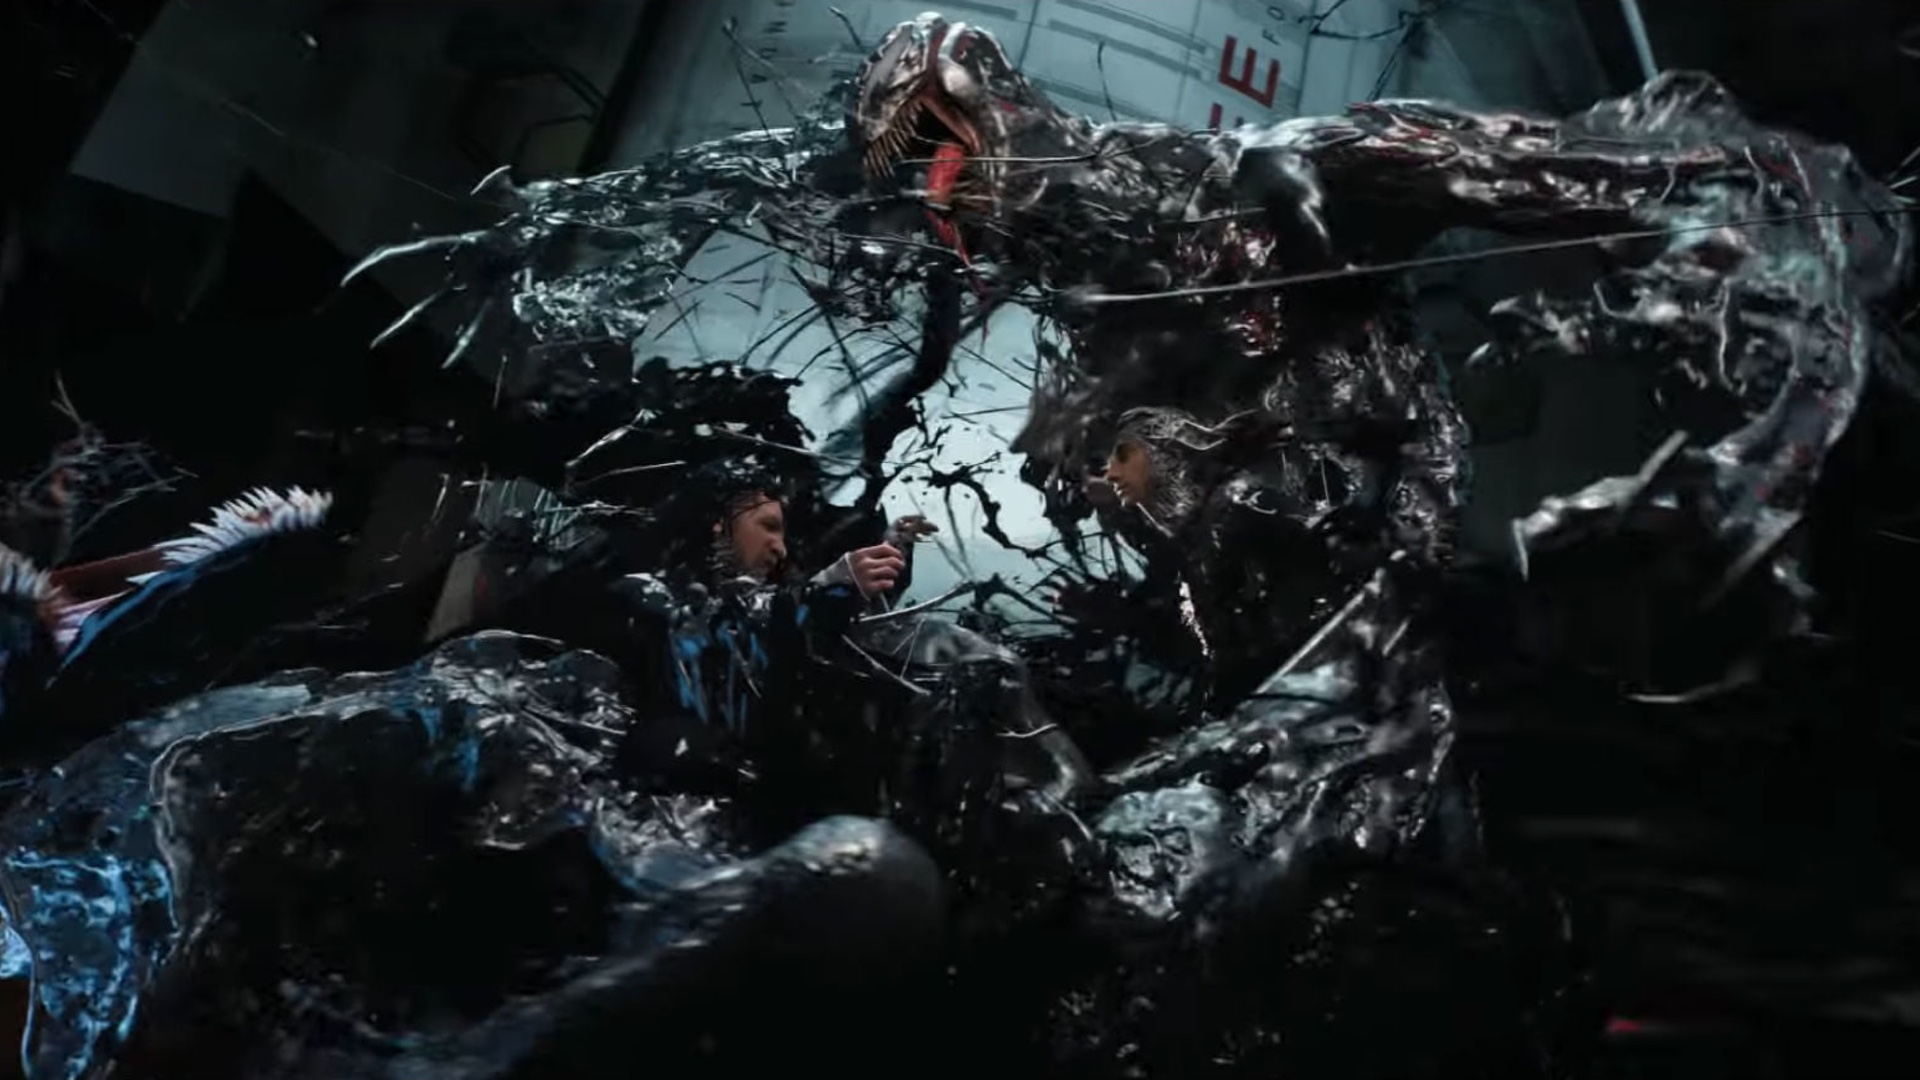 Cool Concept Art From VENOM Shows an Unused Scene and a Fight Sequence